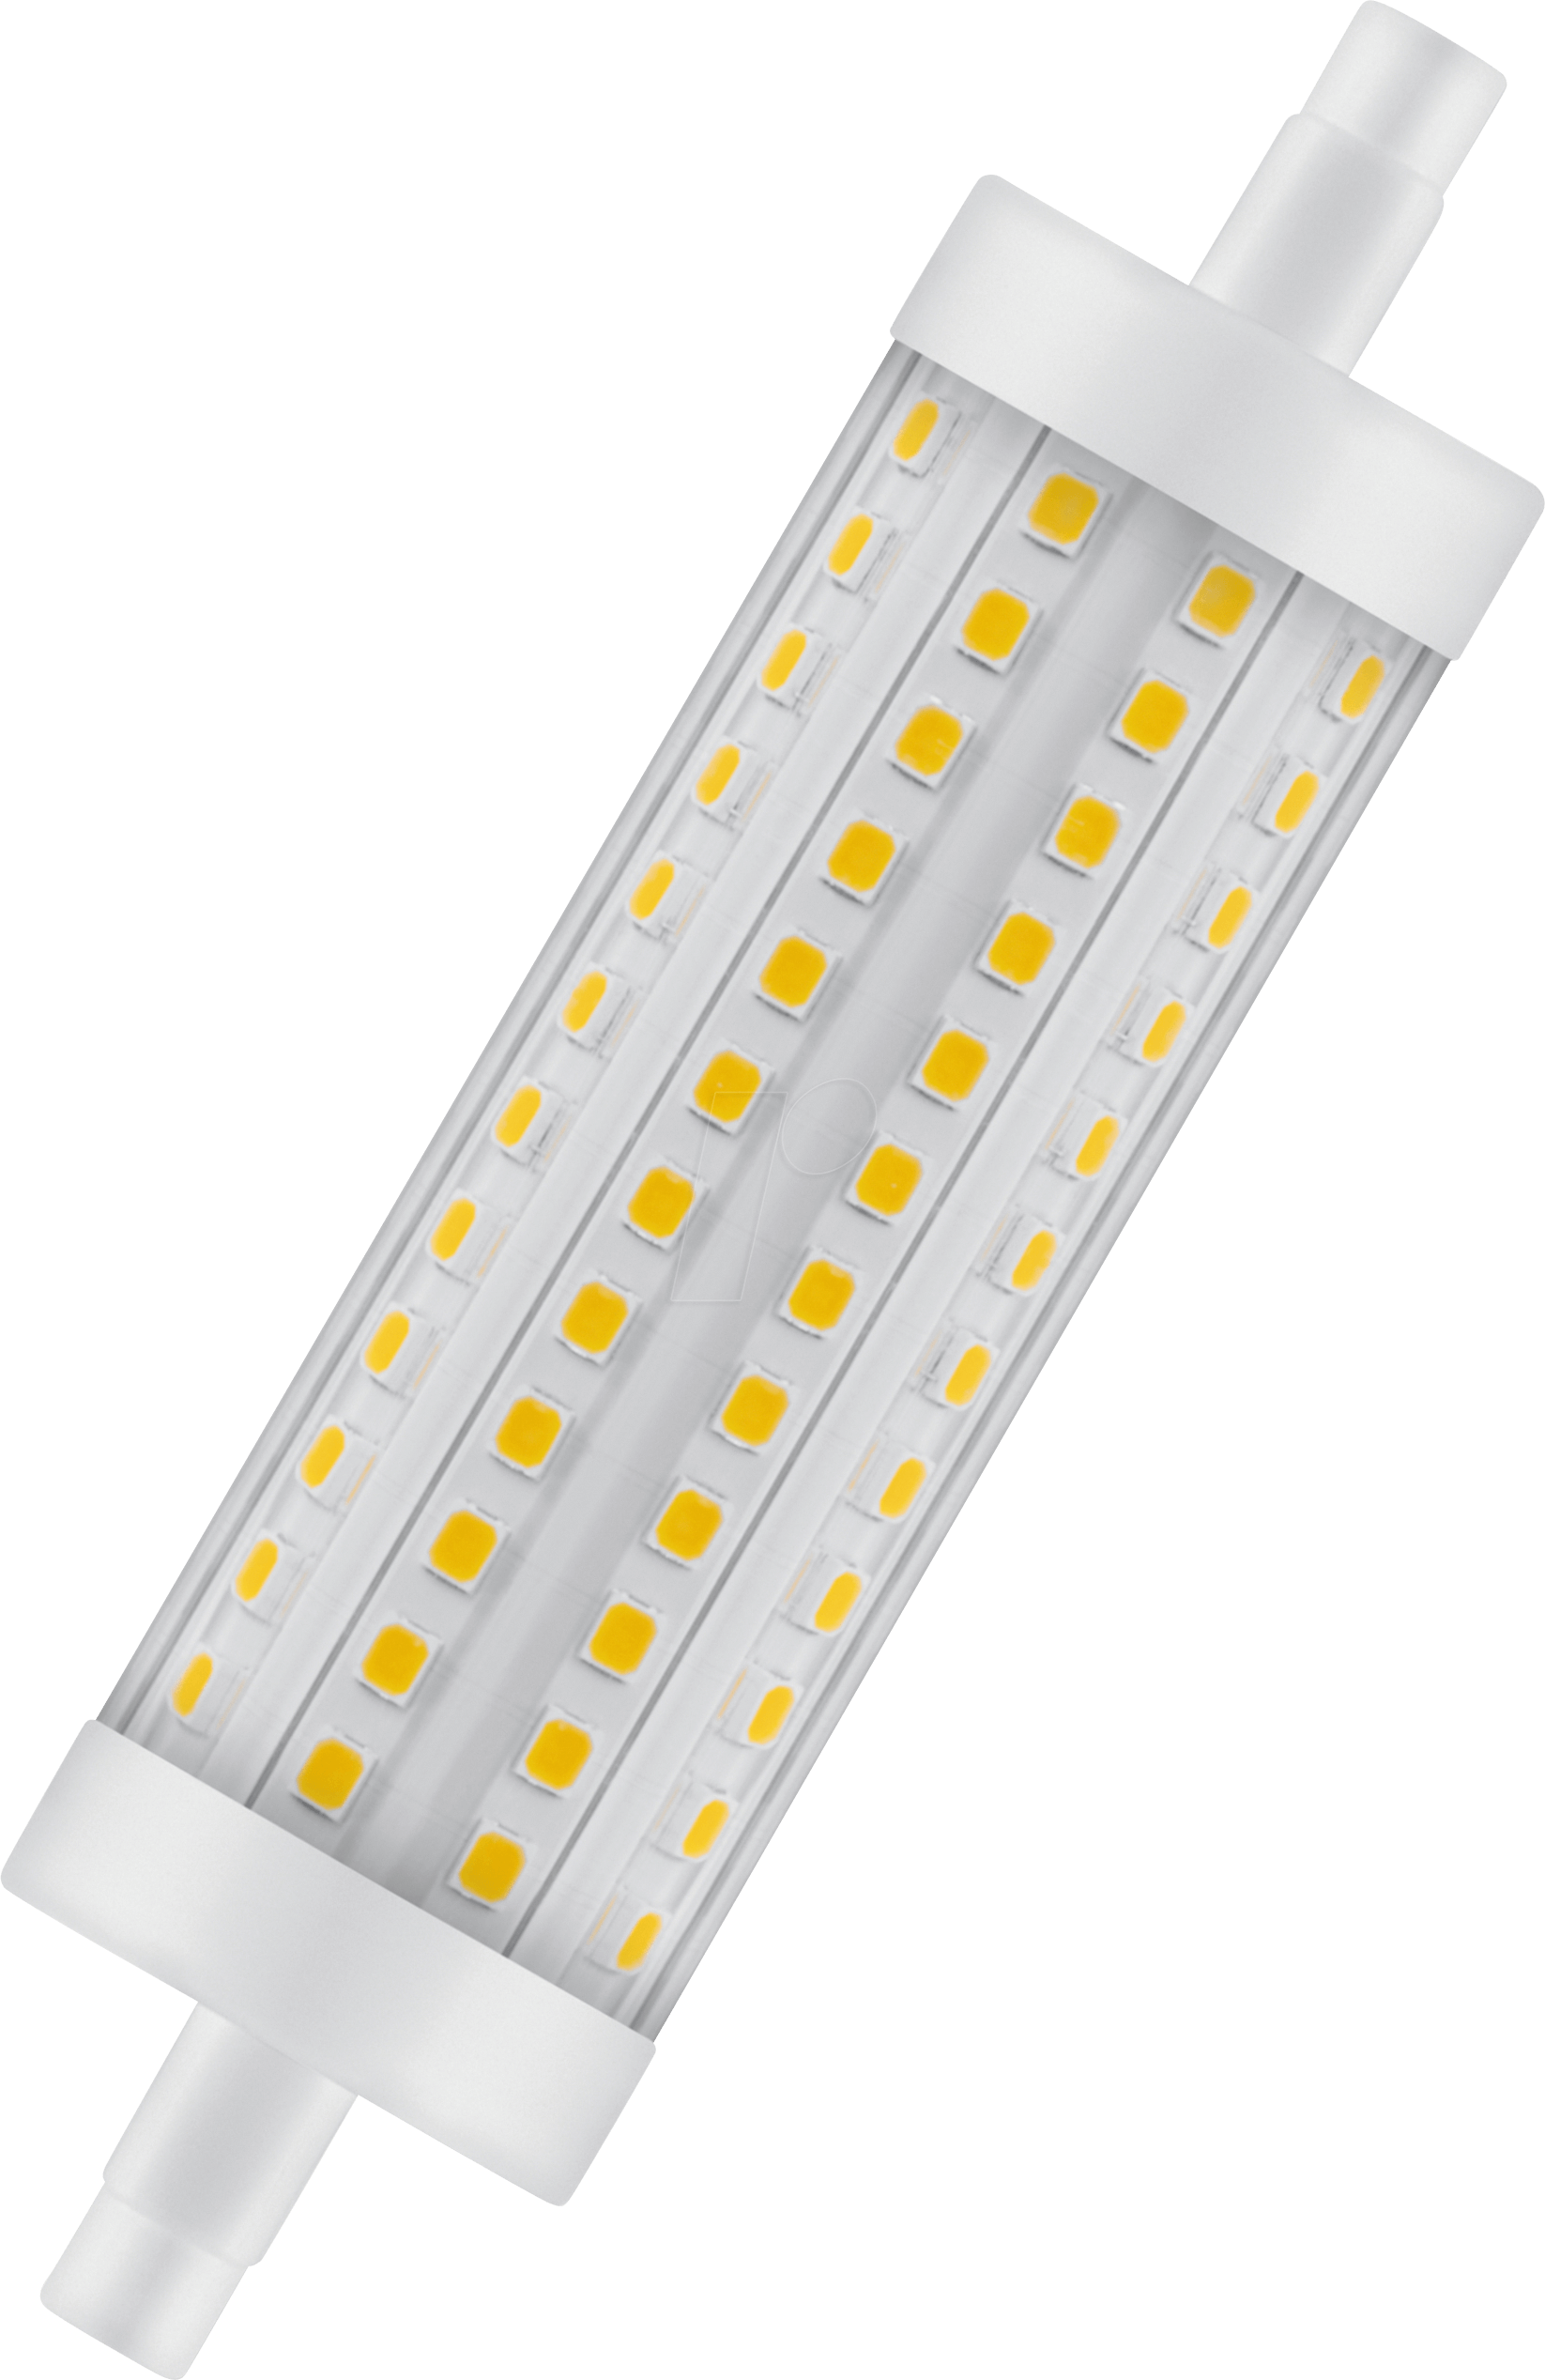 R7s Led Dimmable Osr 405807581173 Led Bulb Star Line R7s 15 W 2000 Lm 2700 K 118 Mm Dimmable